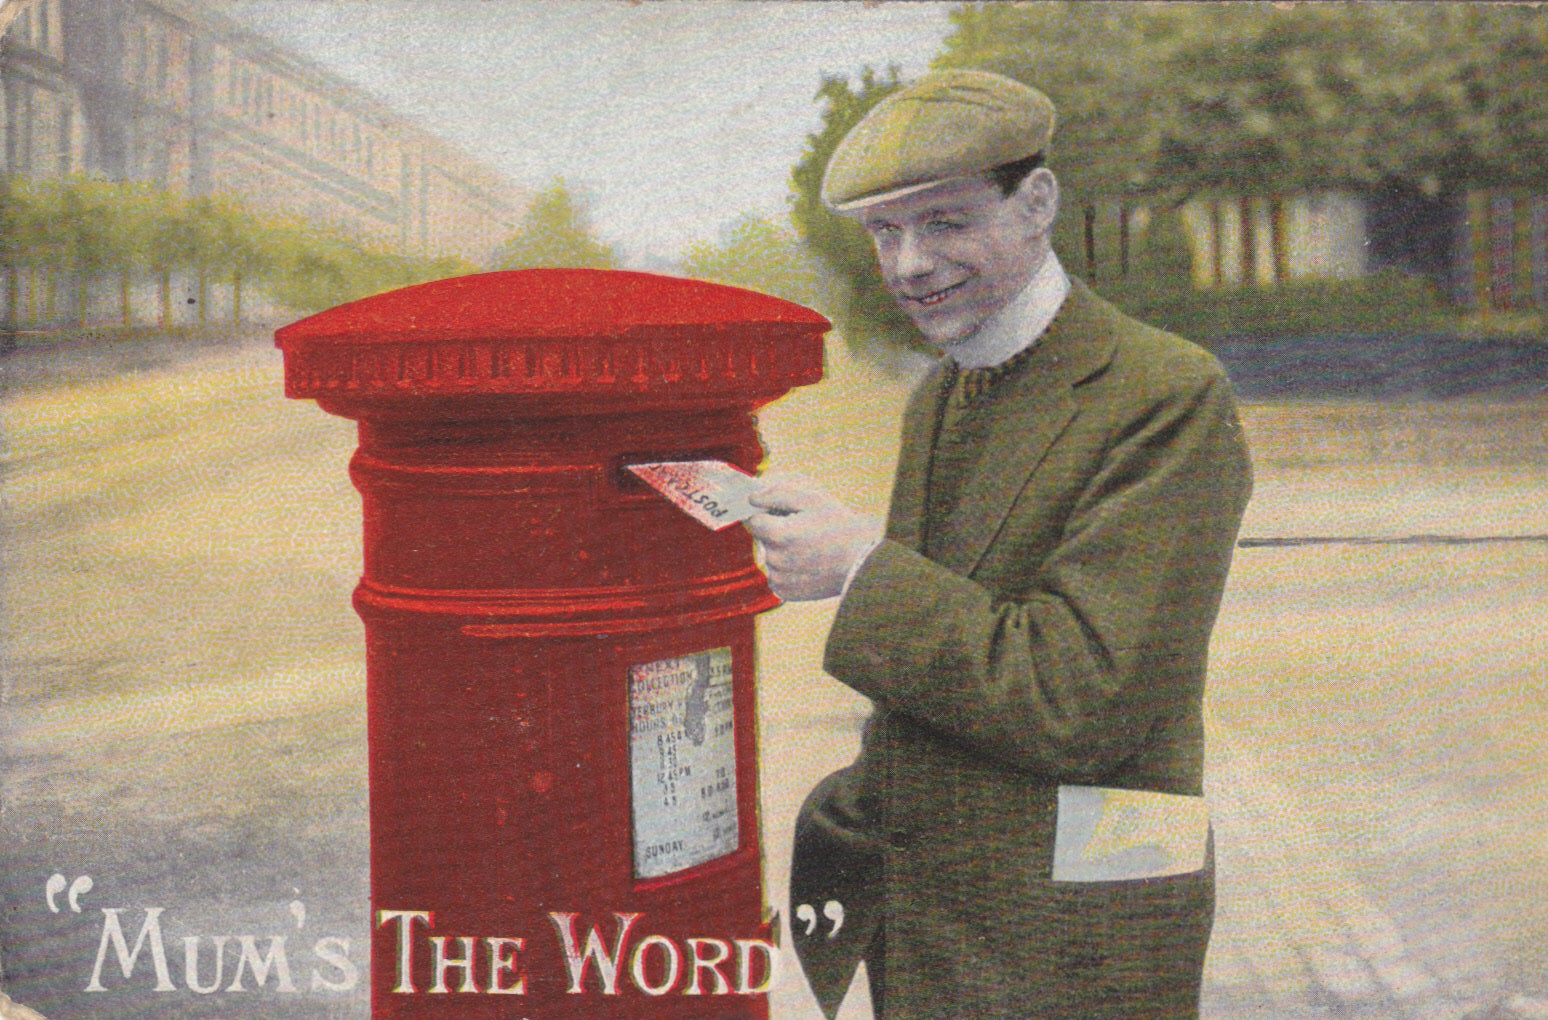 Vintage post box postcard